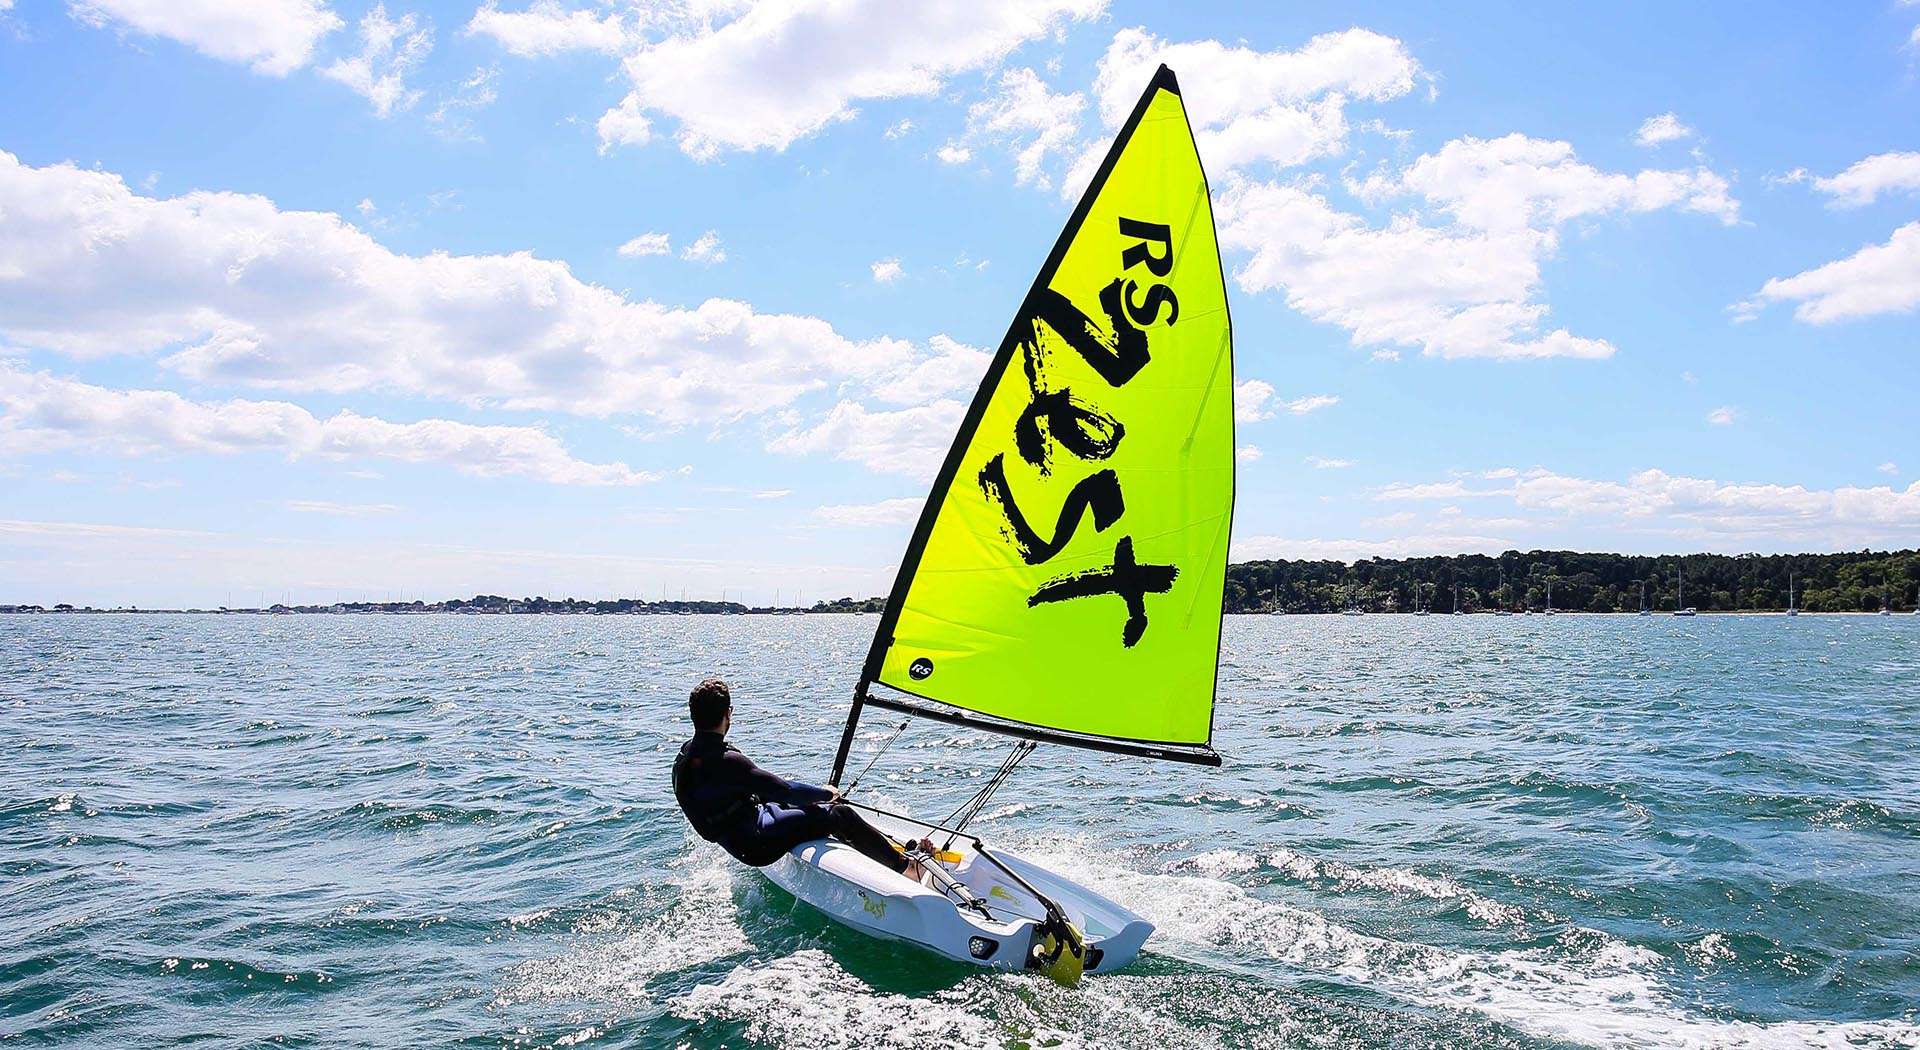 The RS Zest has been designed as a small sailboat training dinghies for a variety of skill level and ability.